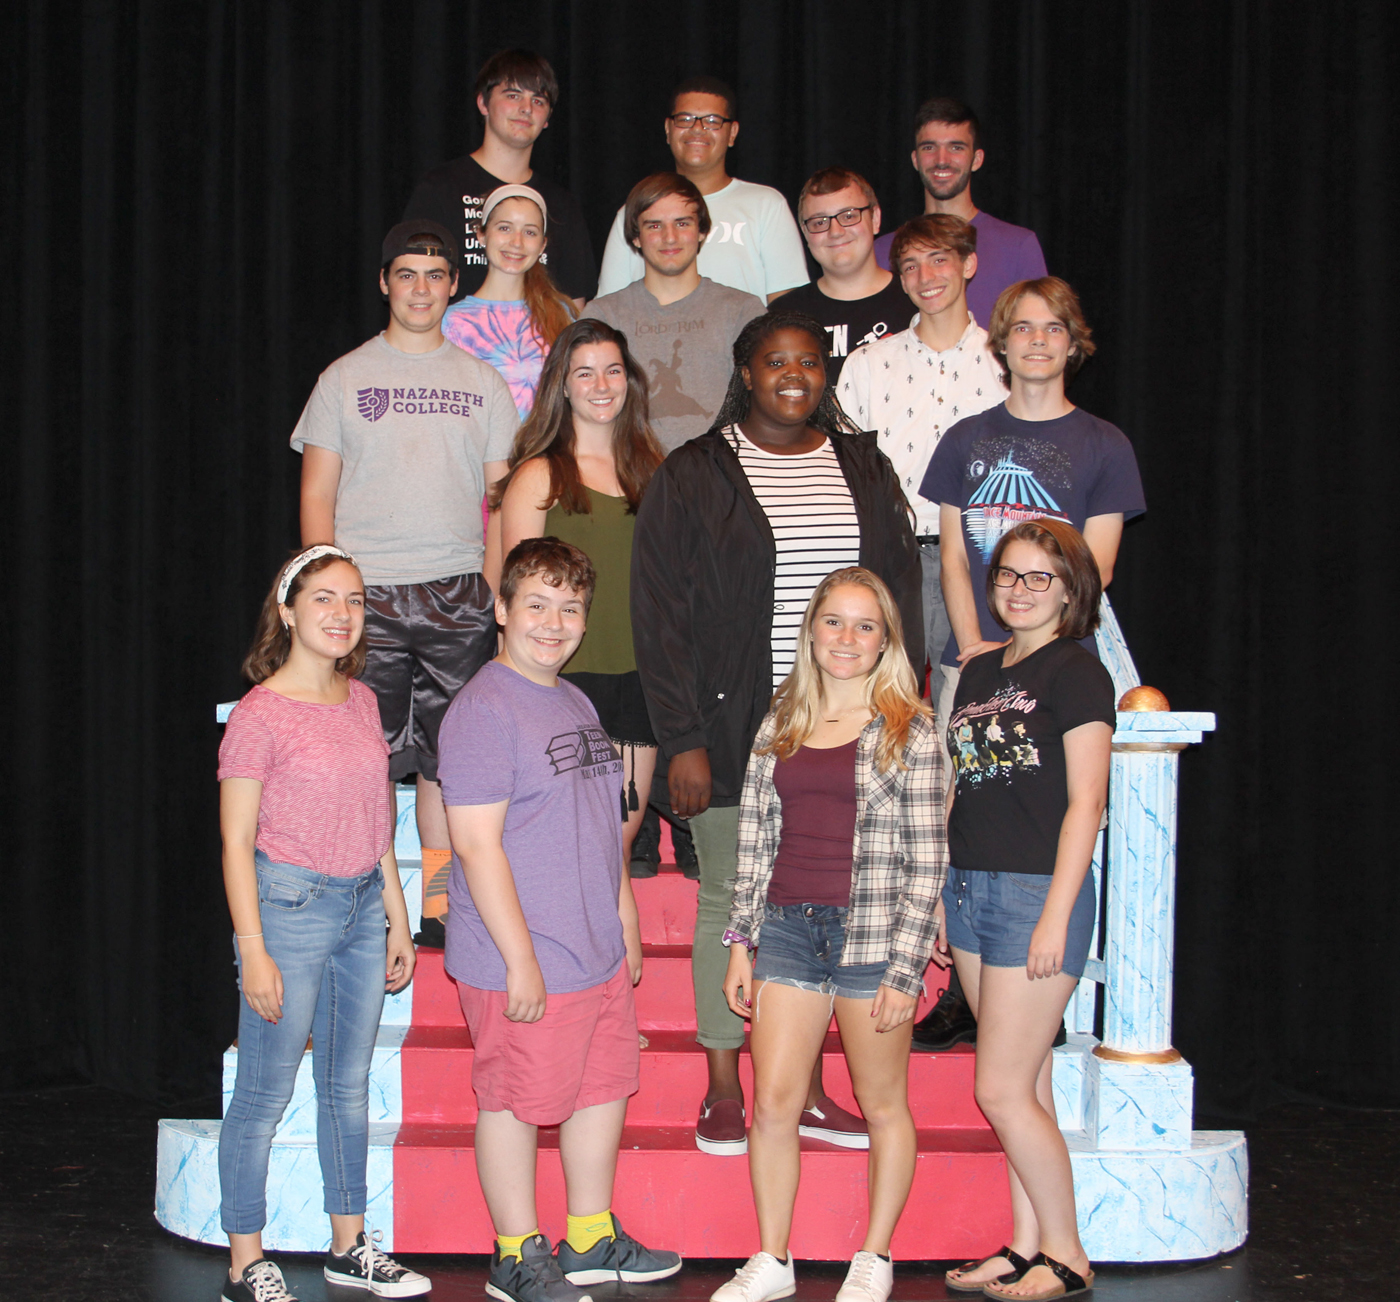 "Brockport High School Drama Club's ""Curtains"" cast: Row 1 - Claire Gratto, Calvin Cavagnaro, Molly Falkenstein, Shay Gauthier; row 2 - Josh Cappadonia, Morgan Costello, Nzinga Marah, James McAllister; row 3 - Emma Michels, Gavin Tremblay, Neil Czerniak IV, Jakeb Specht; row 4 - Sam Sevor, Trevon Helms, John Dowdell. Provided photo"